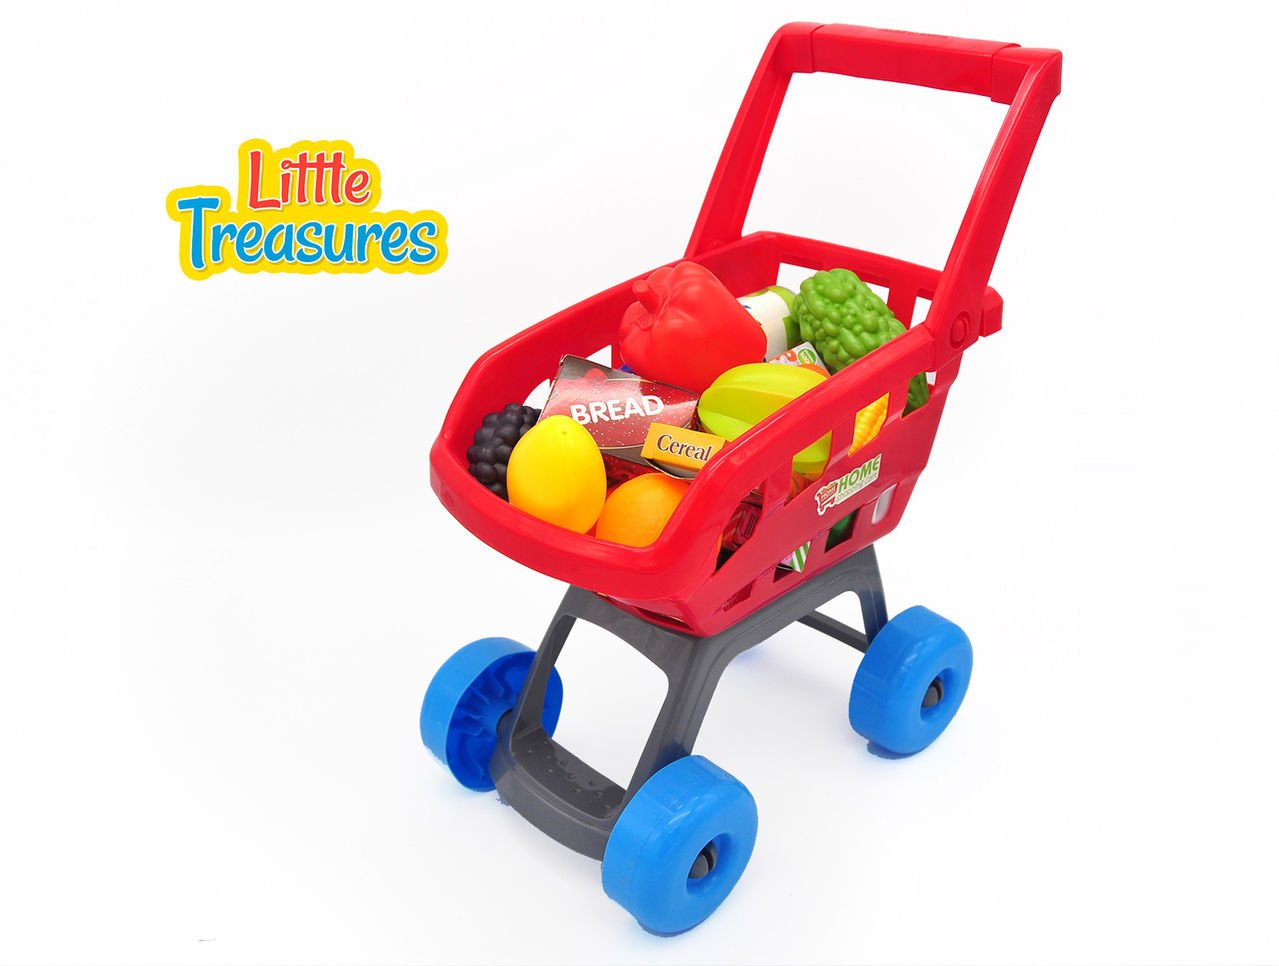 Little Treasures Small Home Shopping Cart grocery Supermarket Playset with 22 Accessories for kids Ages 3 and Up fun pretend play for boys and girls